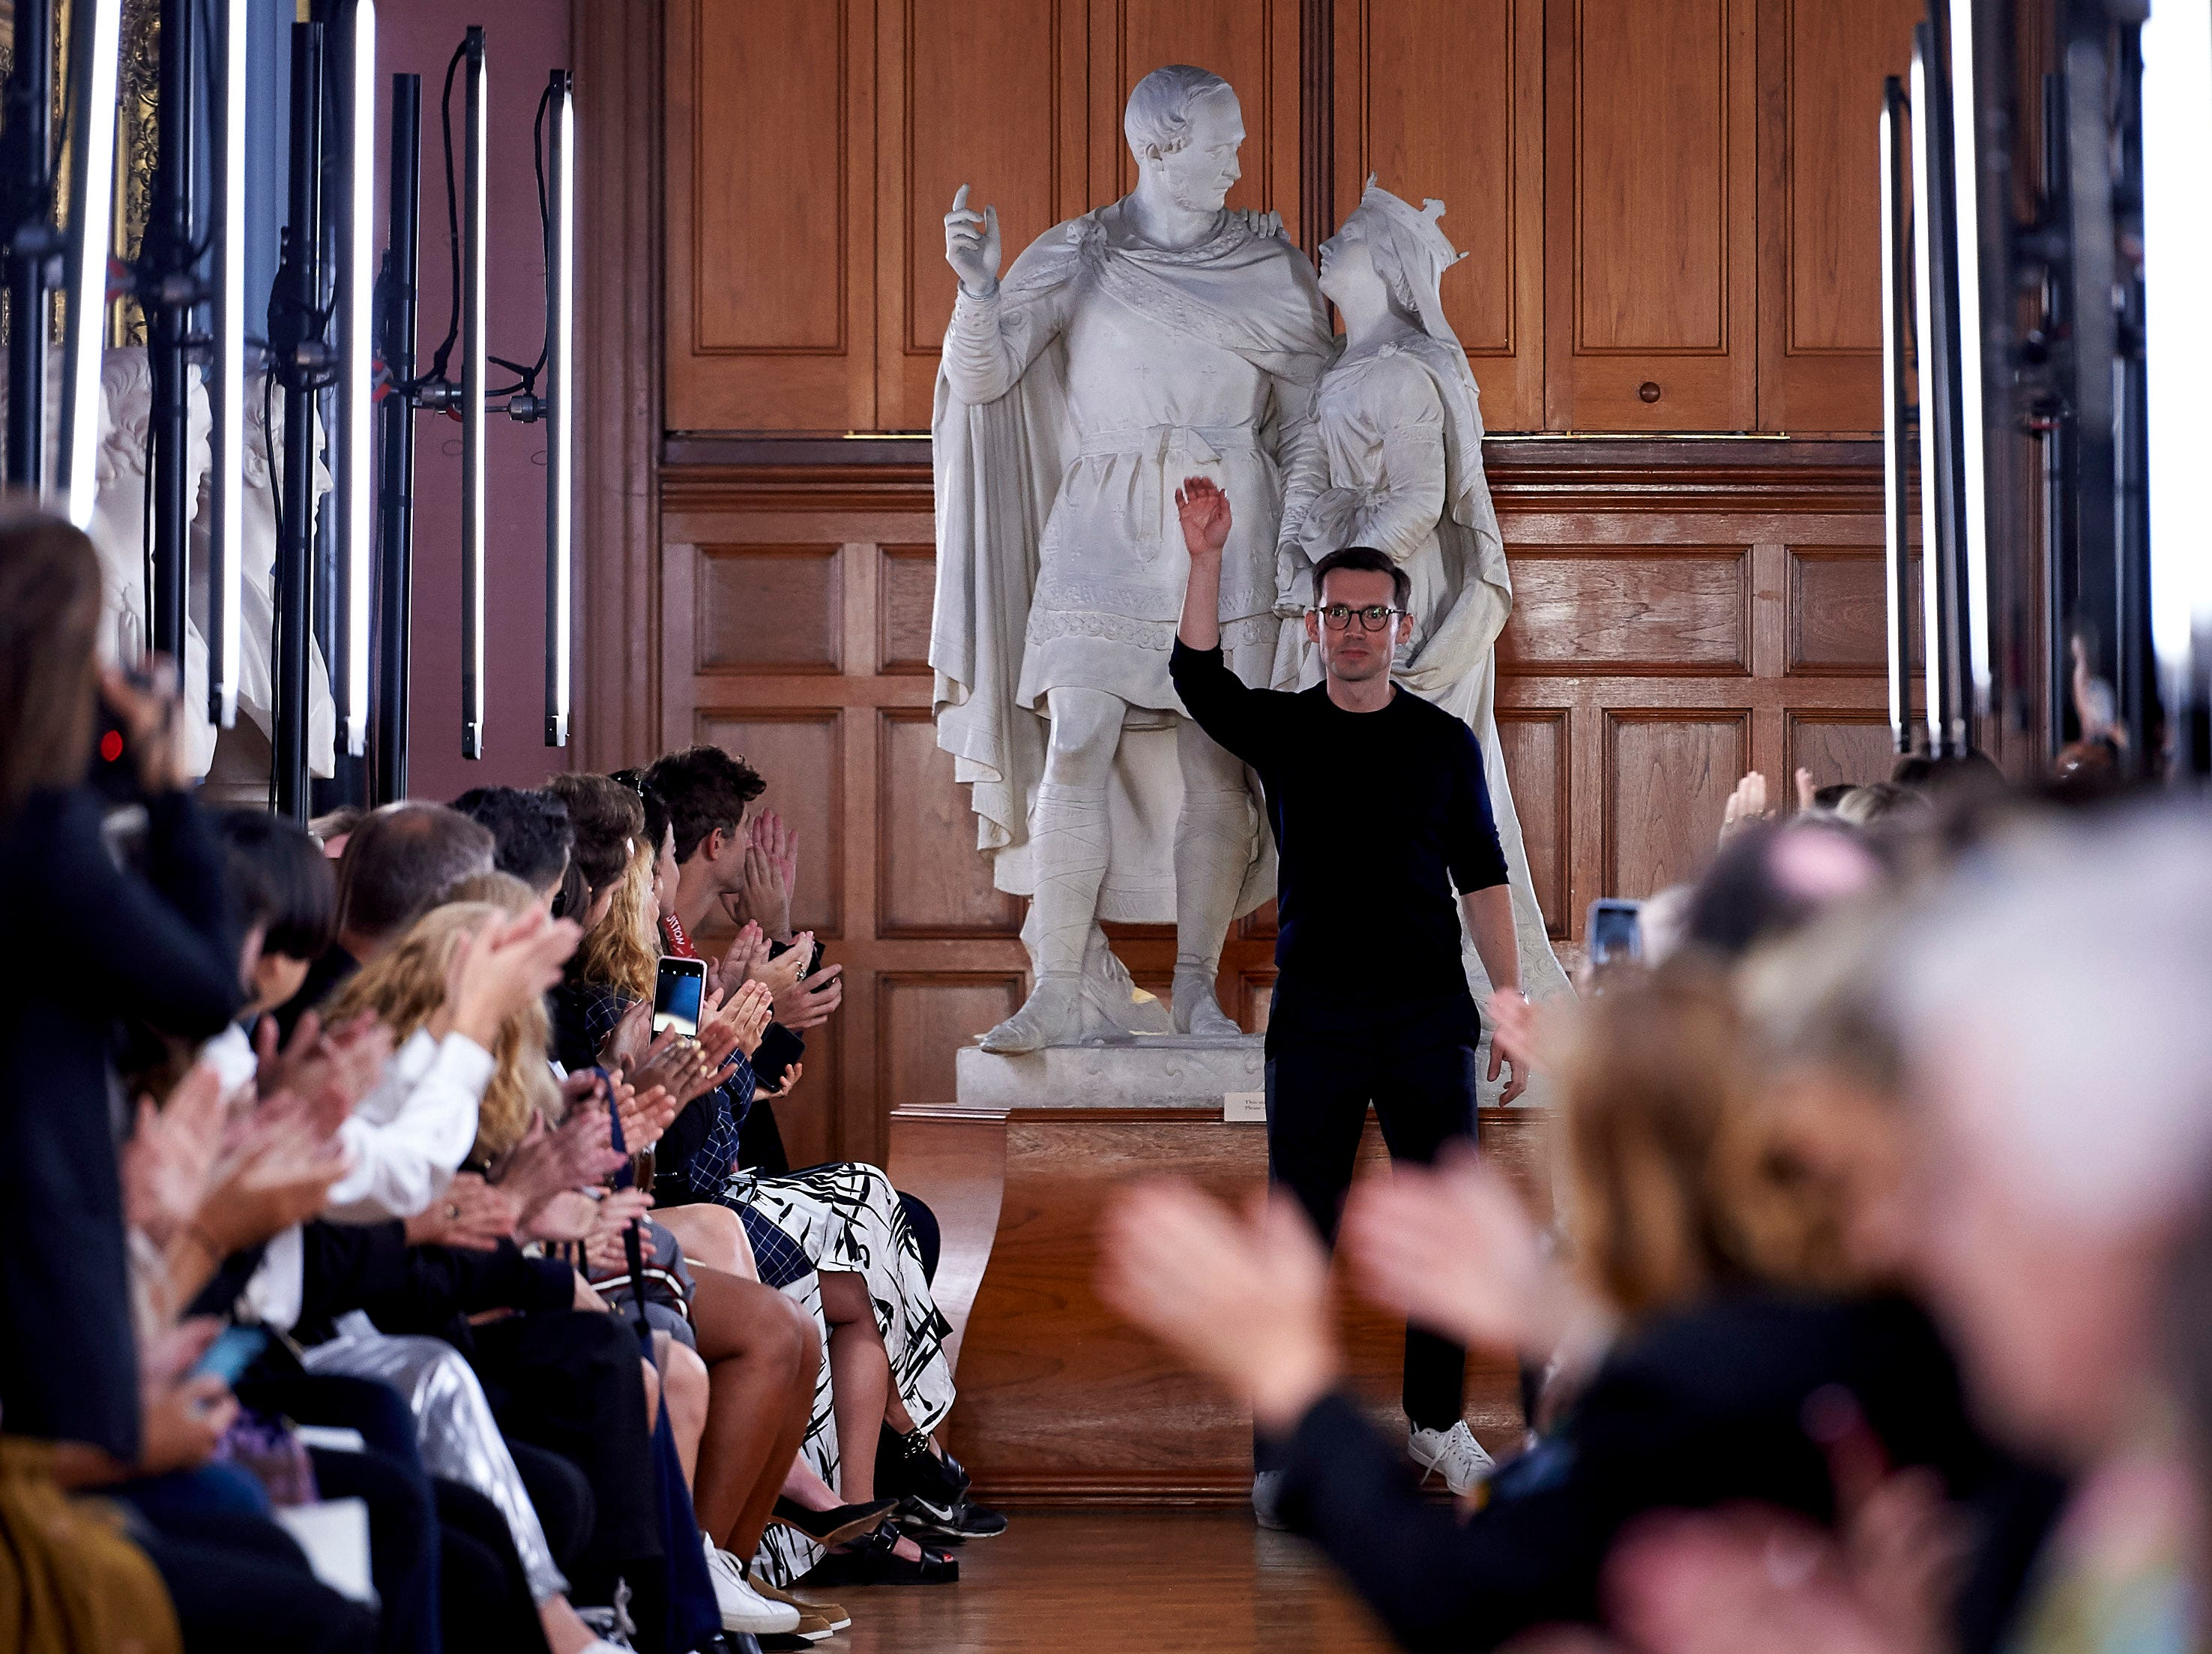 Turkish-Canadian designer Erdem Moralioglu receives applause after presenting his creations during a catwalk show for the Spring/Summer 2019 collection on the fourth day of London Fashion Week in London on September 17, 2018.